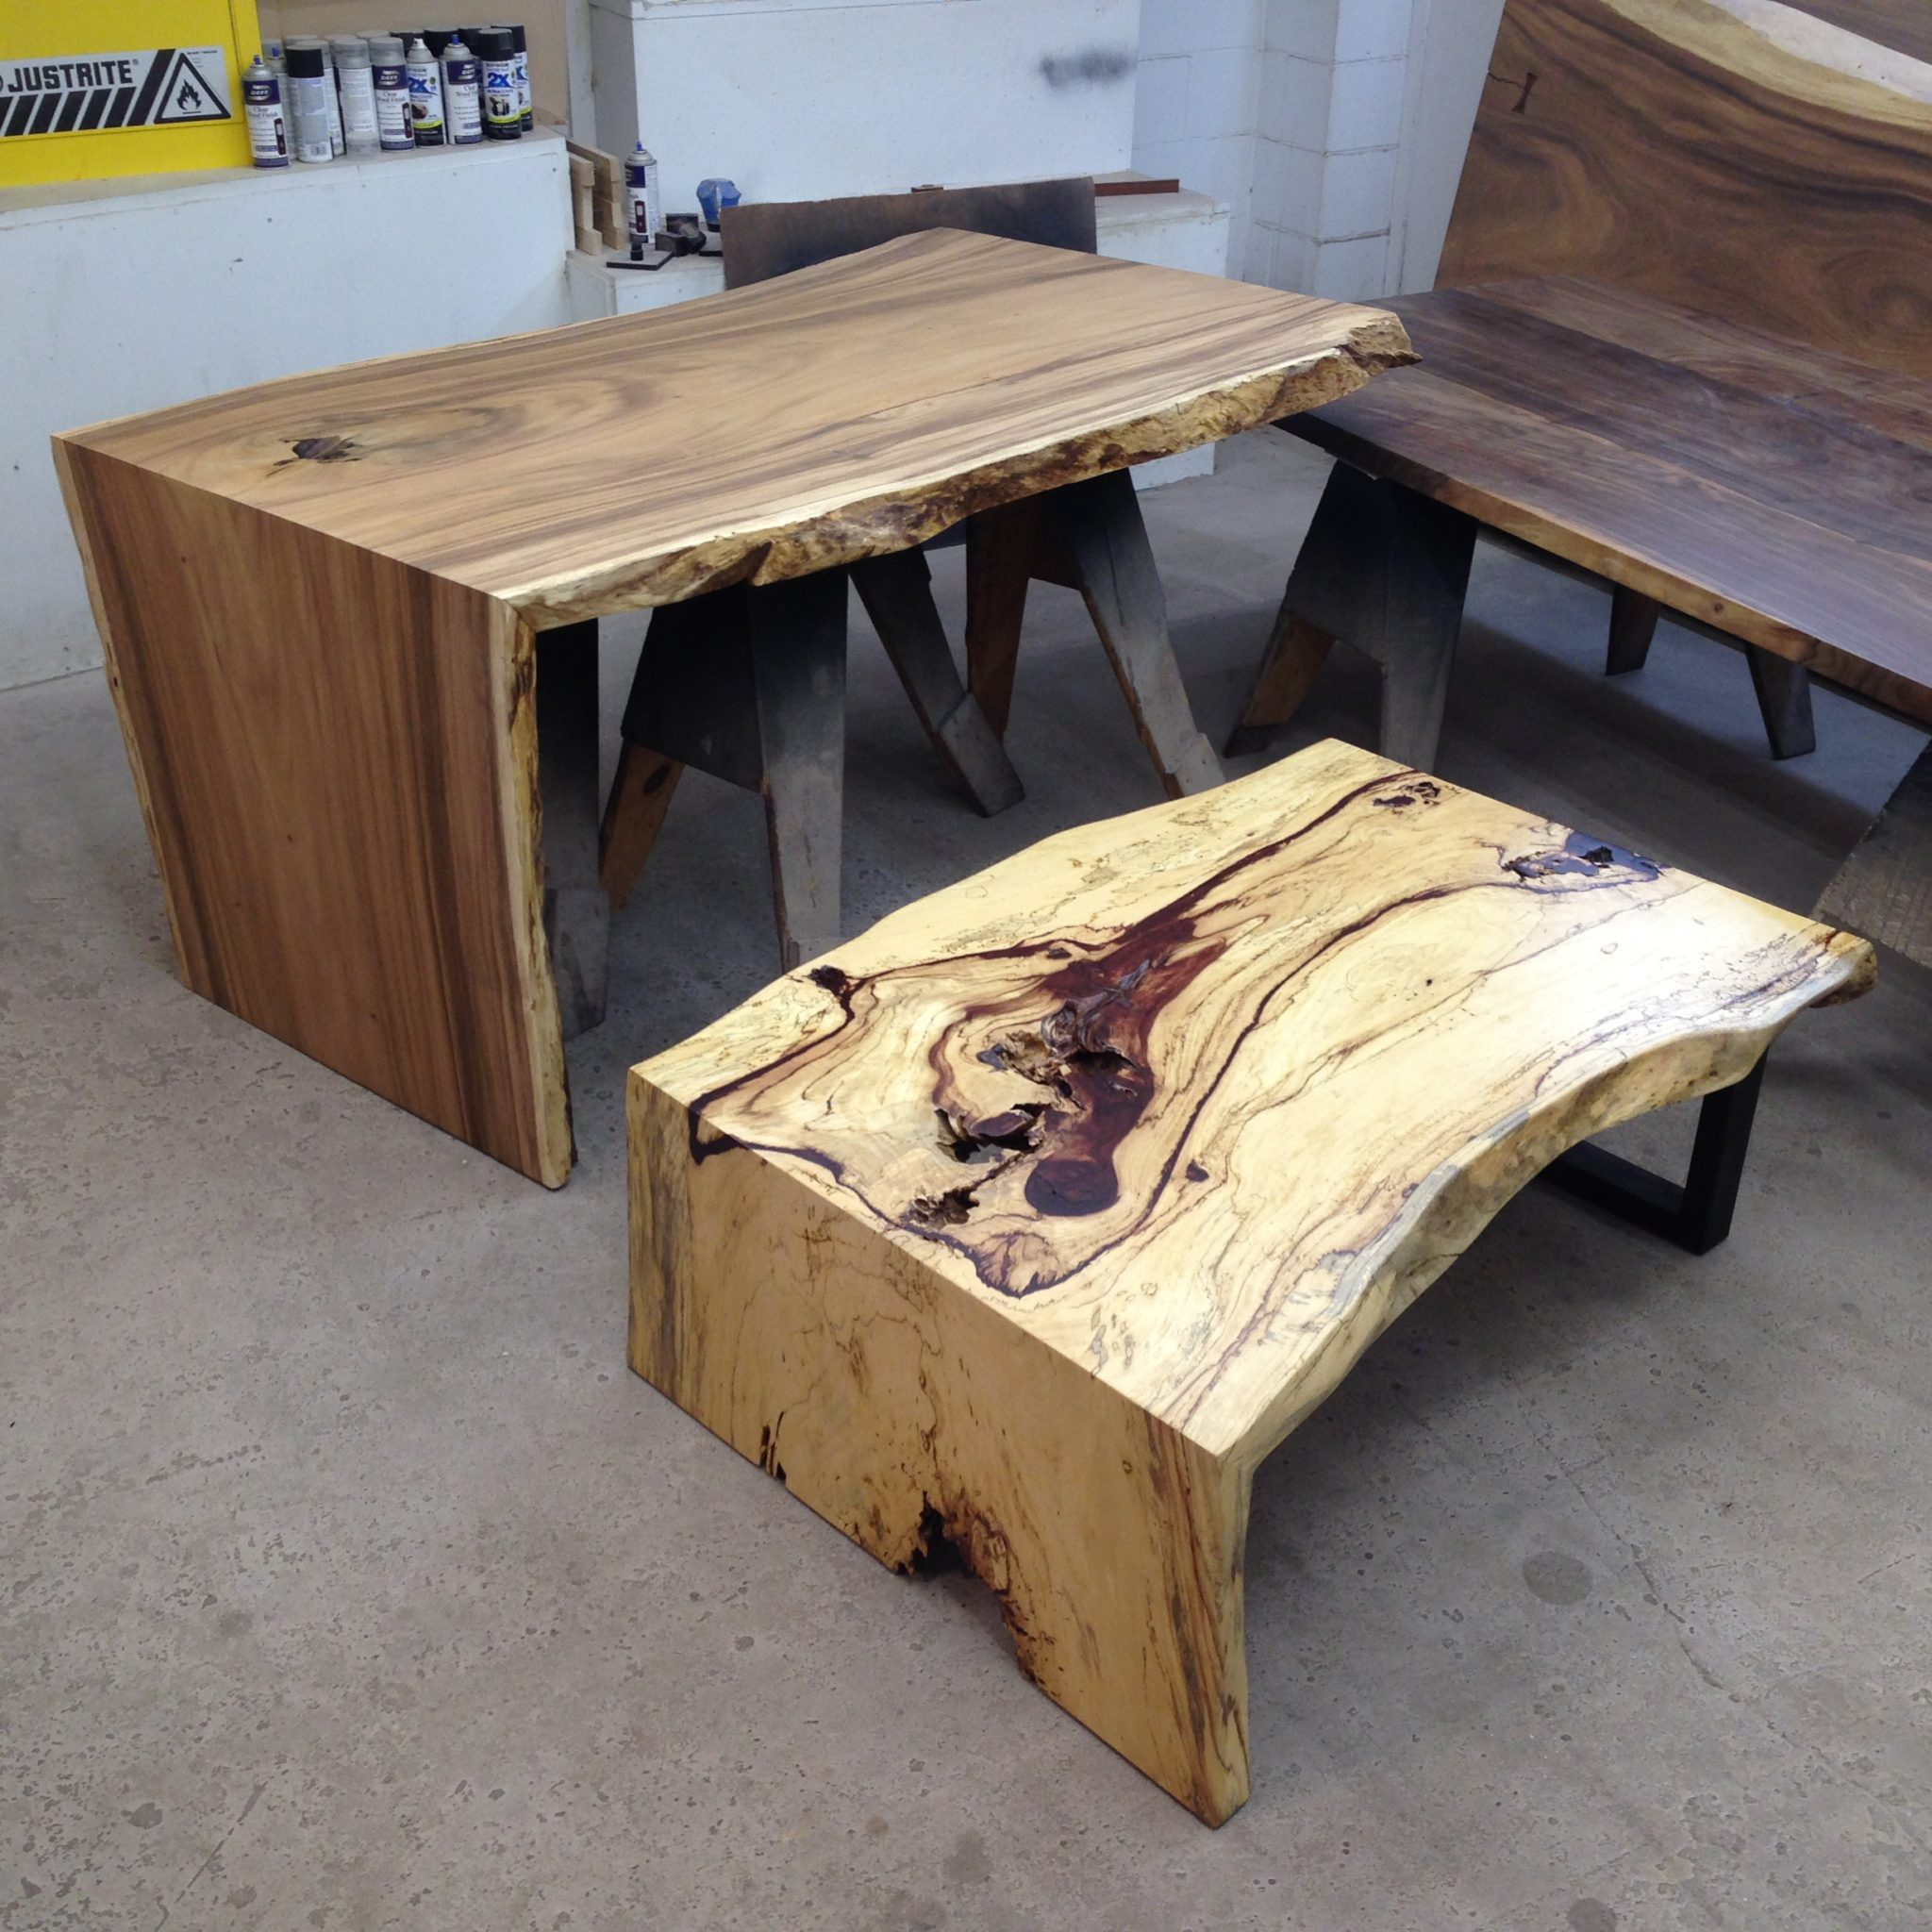 Custom Slab Tables & Live Edge Coffee Tables In San Diego